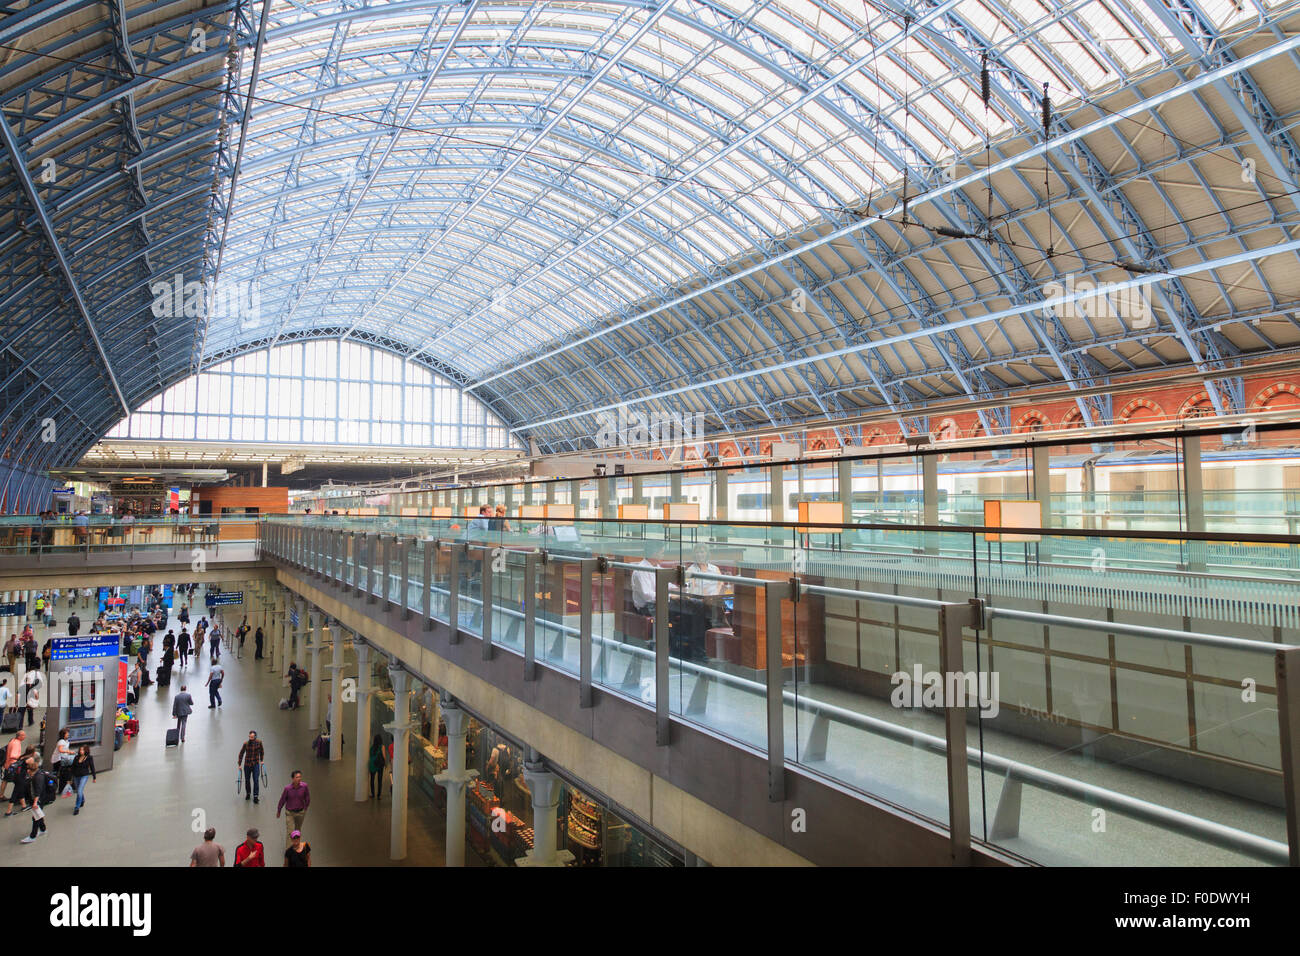 Inside the grade 1 listed St Pancras Railway Station with glazed roof - Stock Image